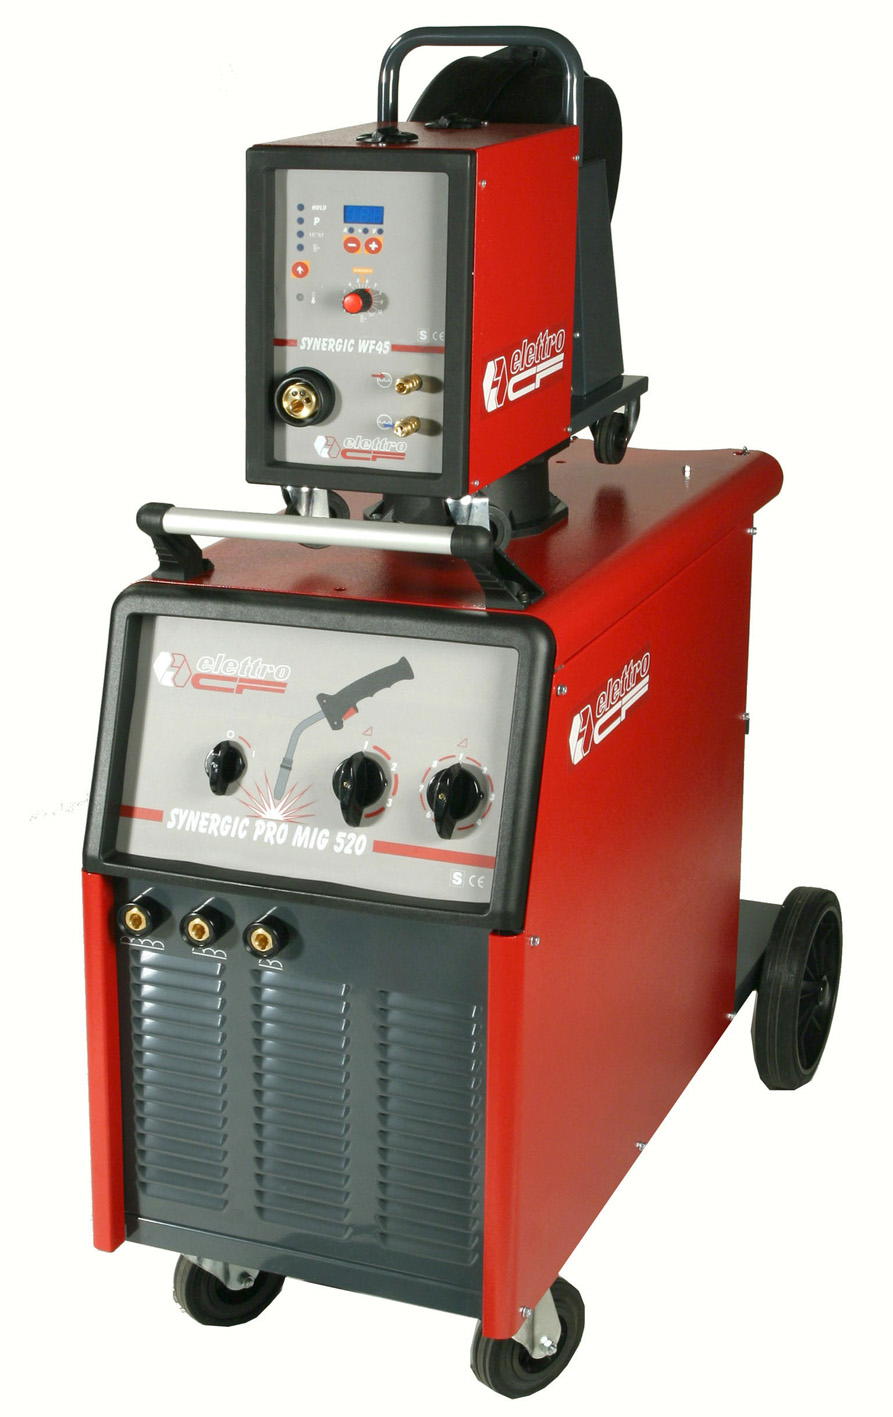 Elettro Cf S00300 Synergic Pro Mig 520 Informativa Cookiespdf Image 50 Amp Welder Plug Wiring Download Three Phase Power Source For Mag Wire Welding Equipped With A 4 Roller Feed Unit Item Wf45 Possibility To Connect Extensions